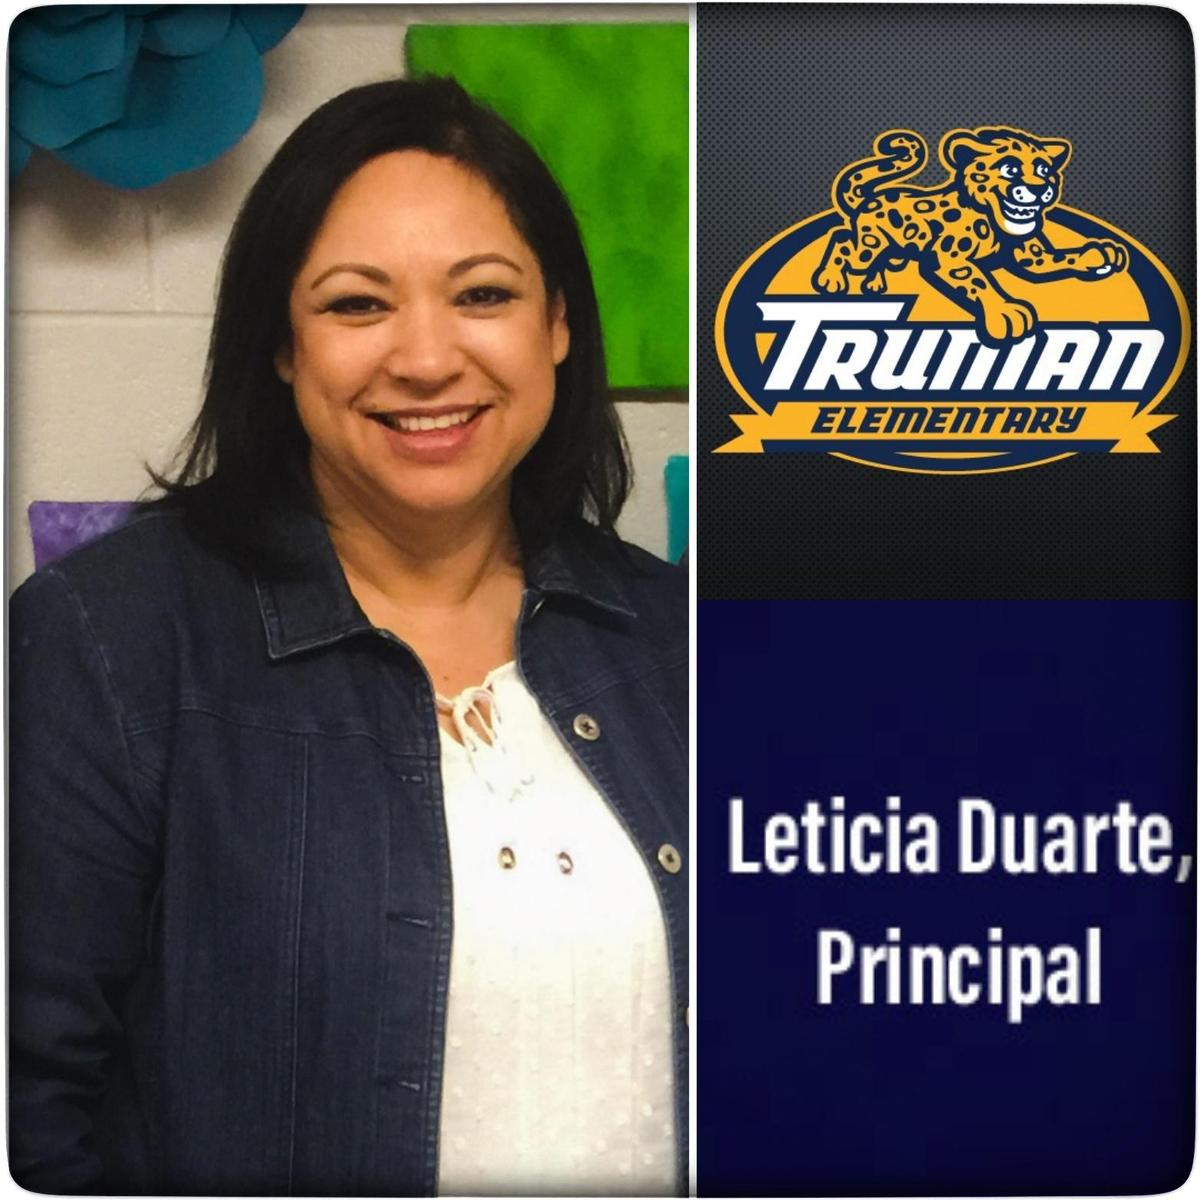 Image of Leticia Duarte, principal and the Truman logo